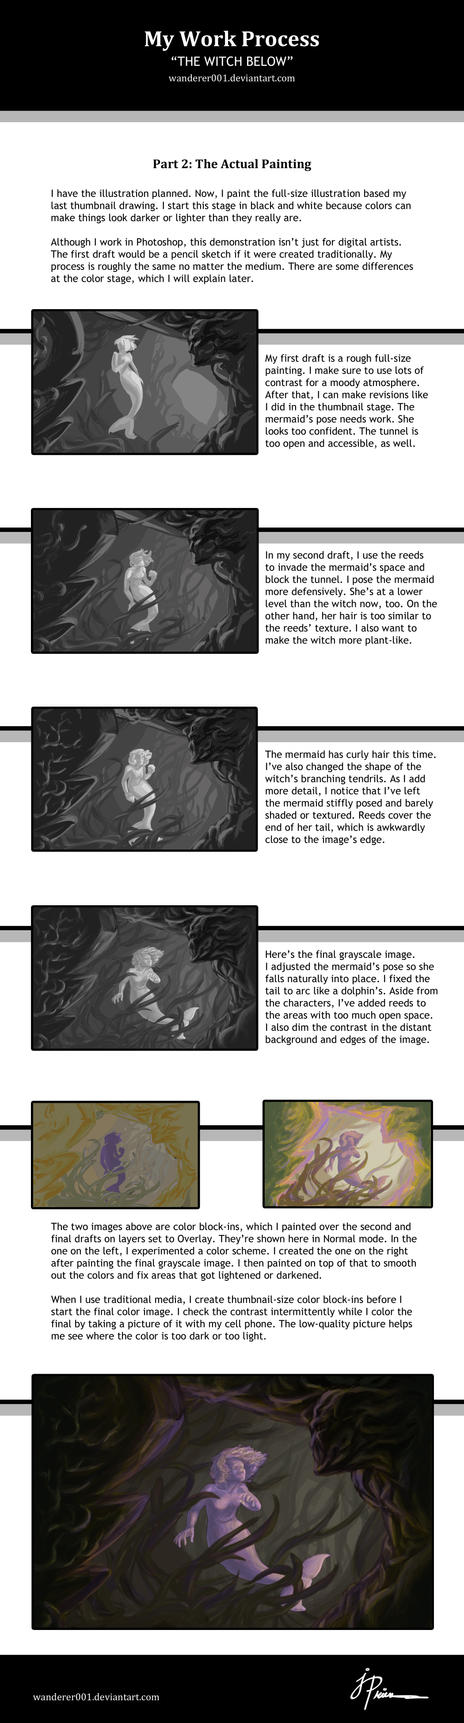 My Process-The Witch Below P2 by Wanderer001